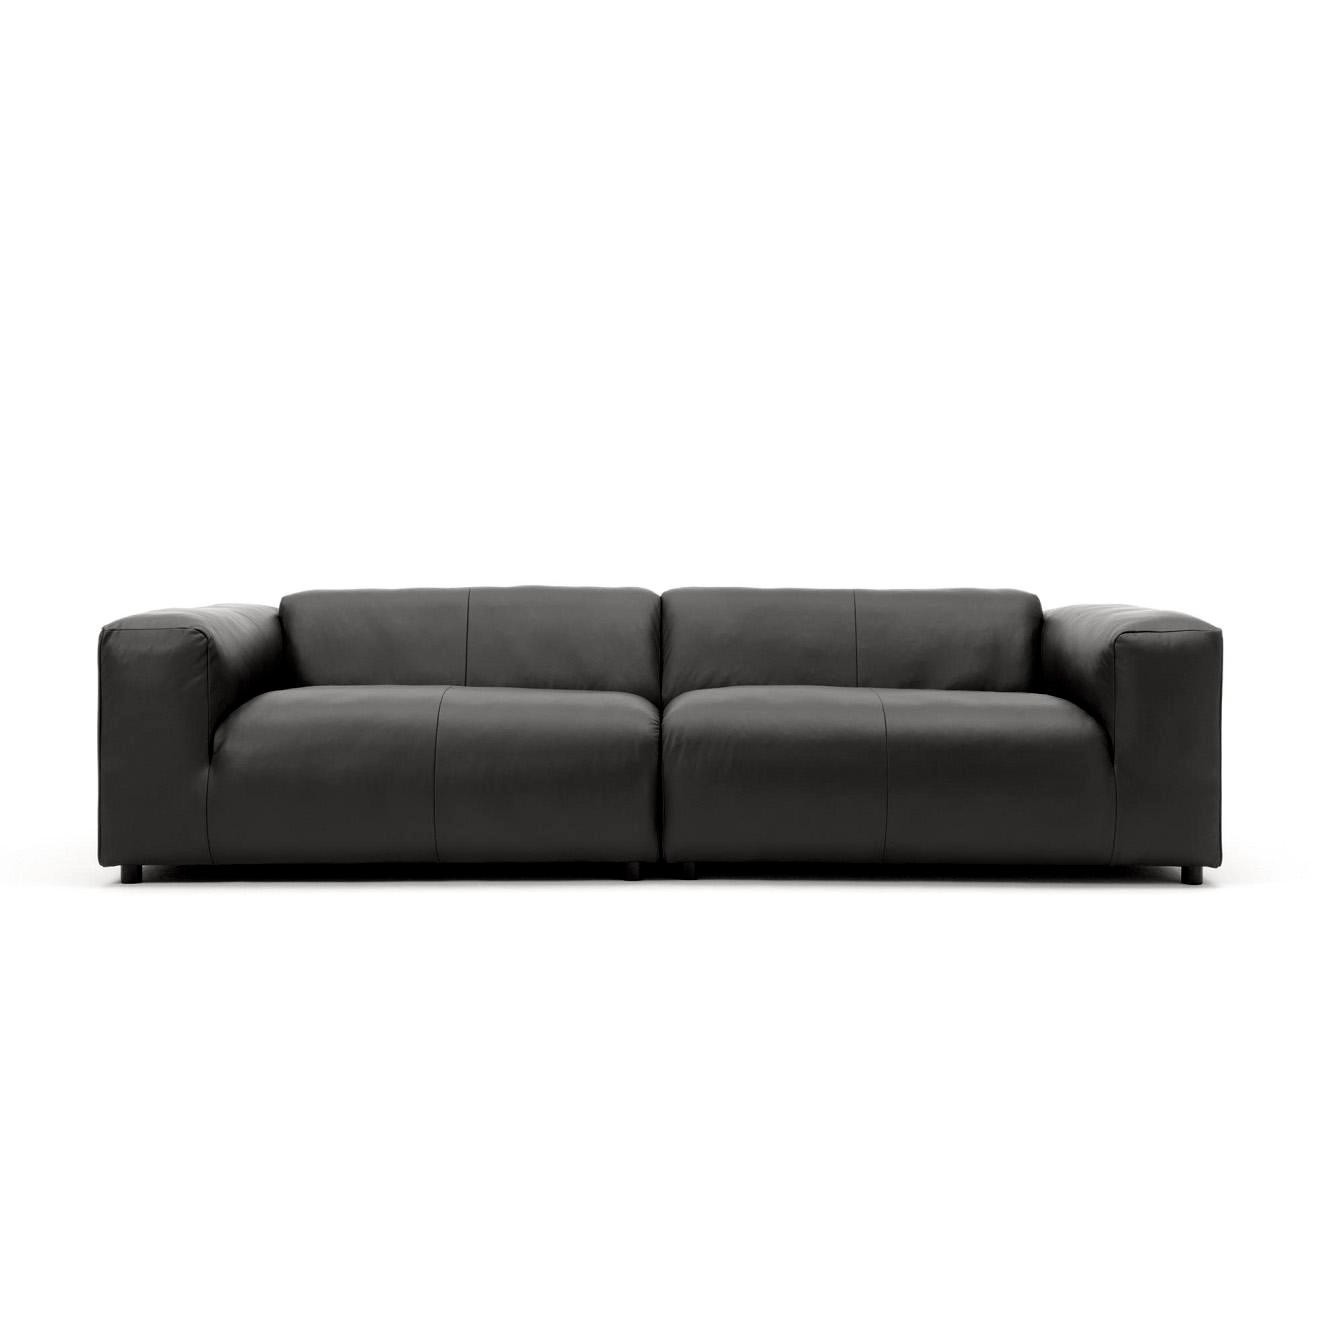 Freistil Rolf Benz 187 3 Seater Leather Sofa 260x67x110cm Black